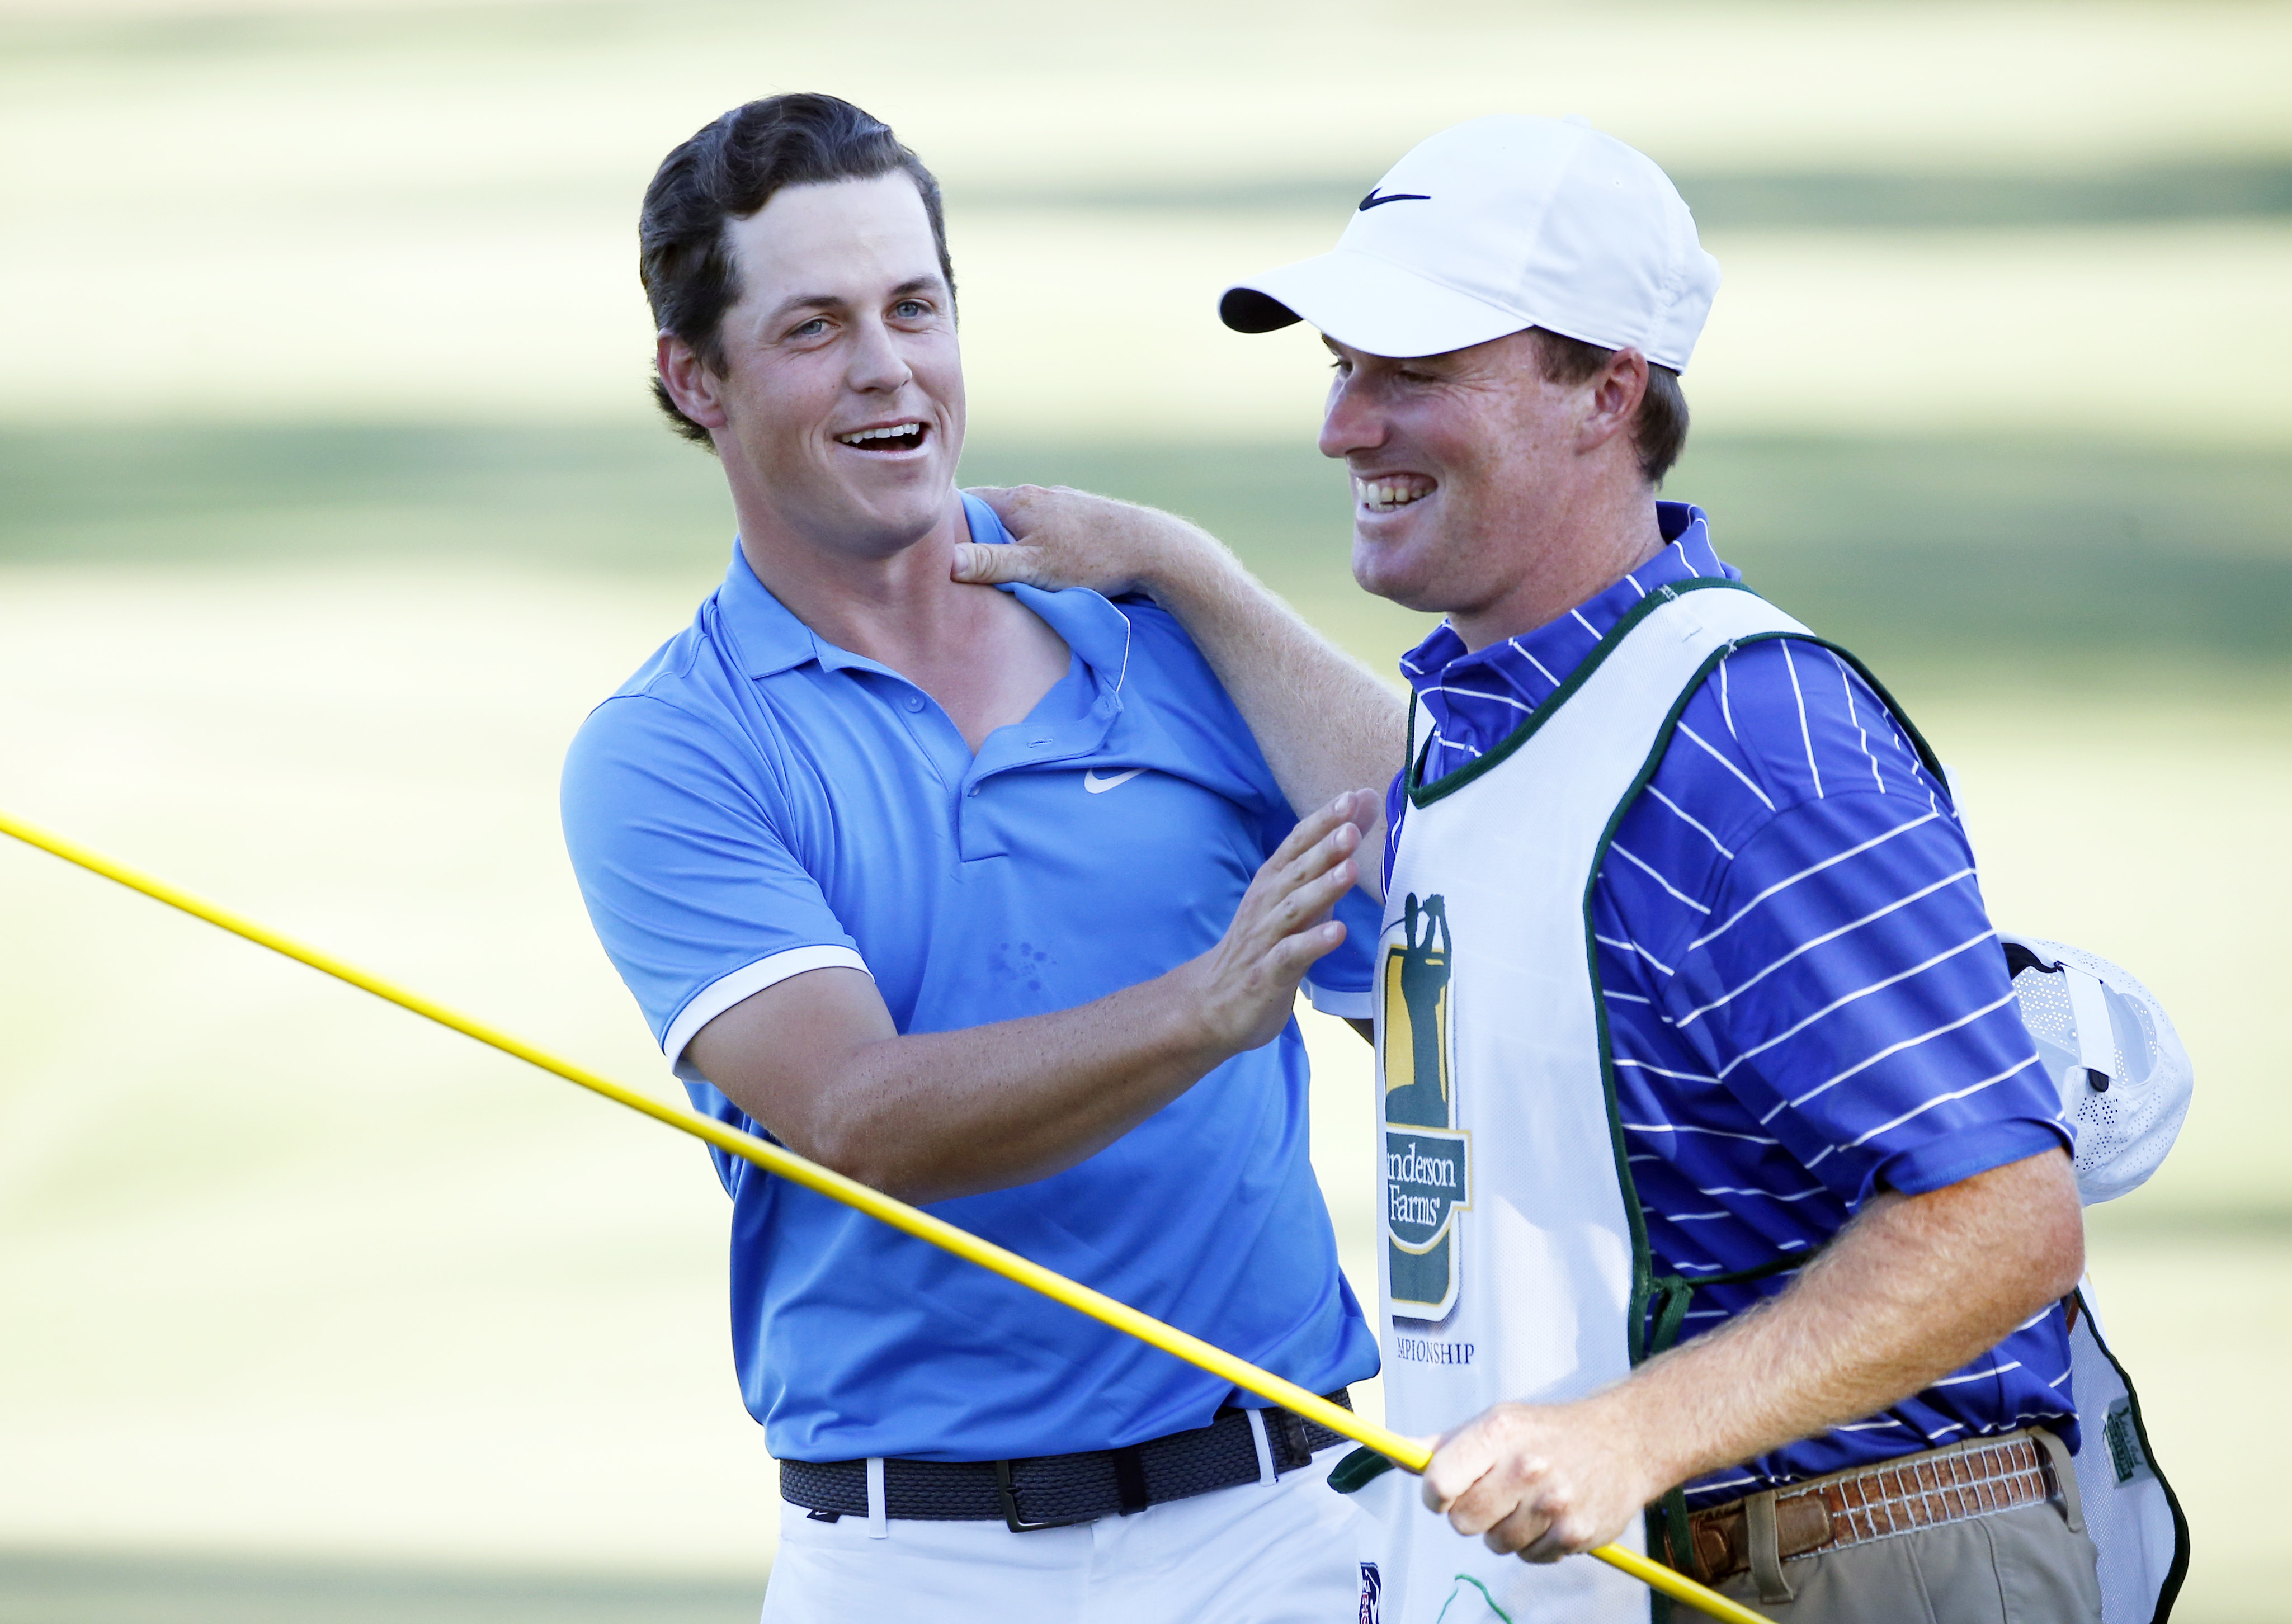 Cody Gribble and his caddie Bobby Hudson celebrate Gribble's winning of the Sanderson Farms Championship.